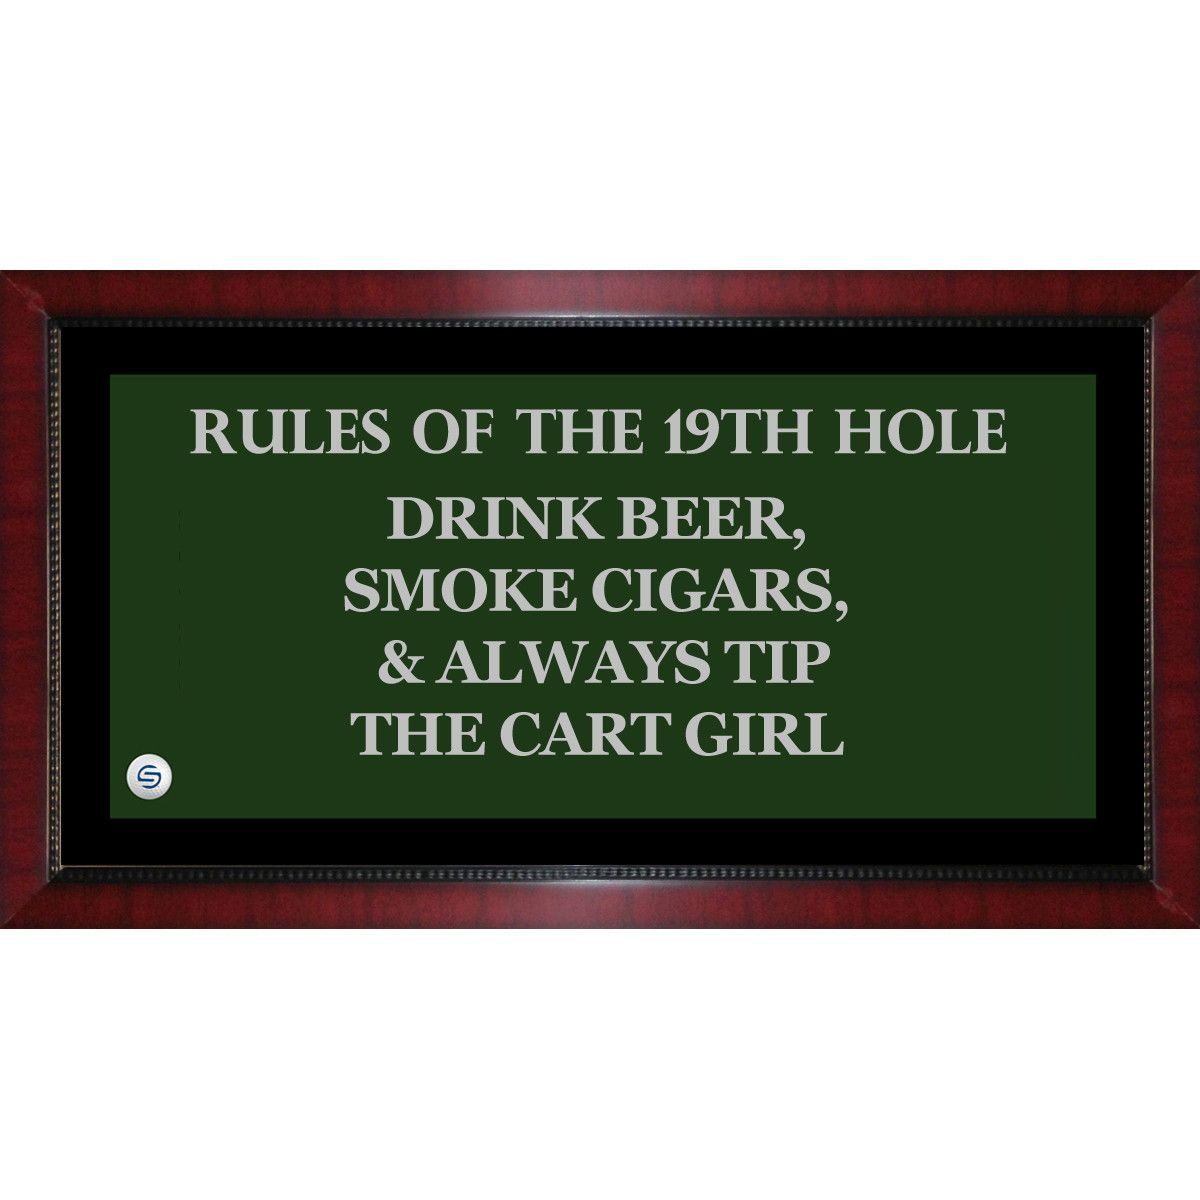 Rules of the 19th Hole Framed 9.5x19 Sign Uns | P RESTAURANT GK ...